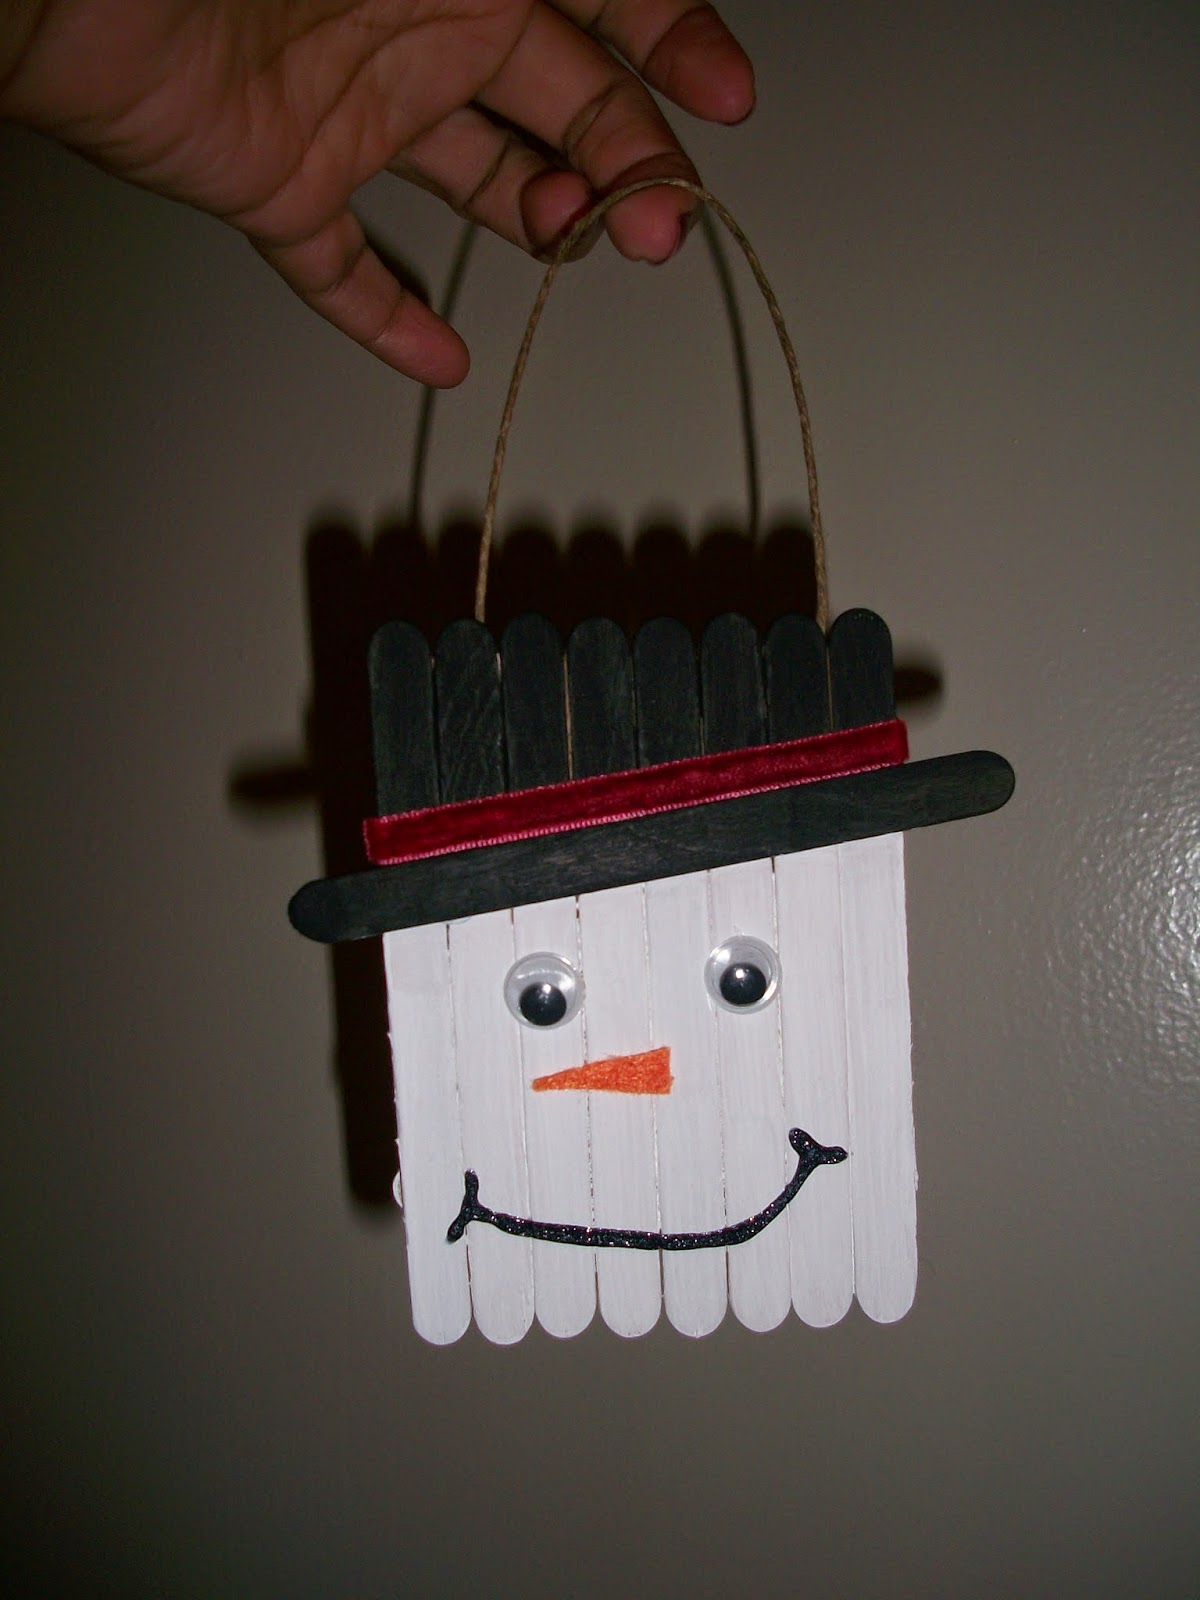 Completed DIY craft stick snowman ornament